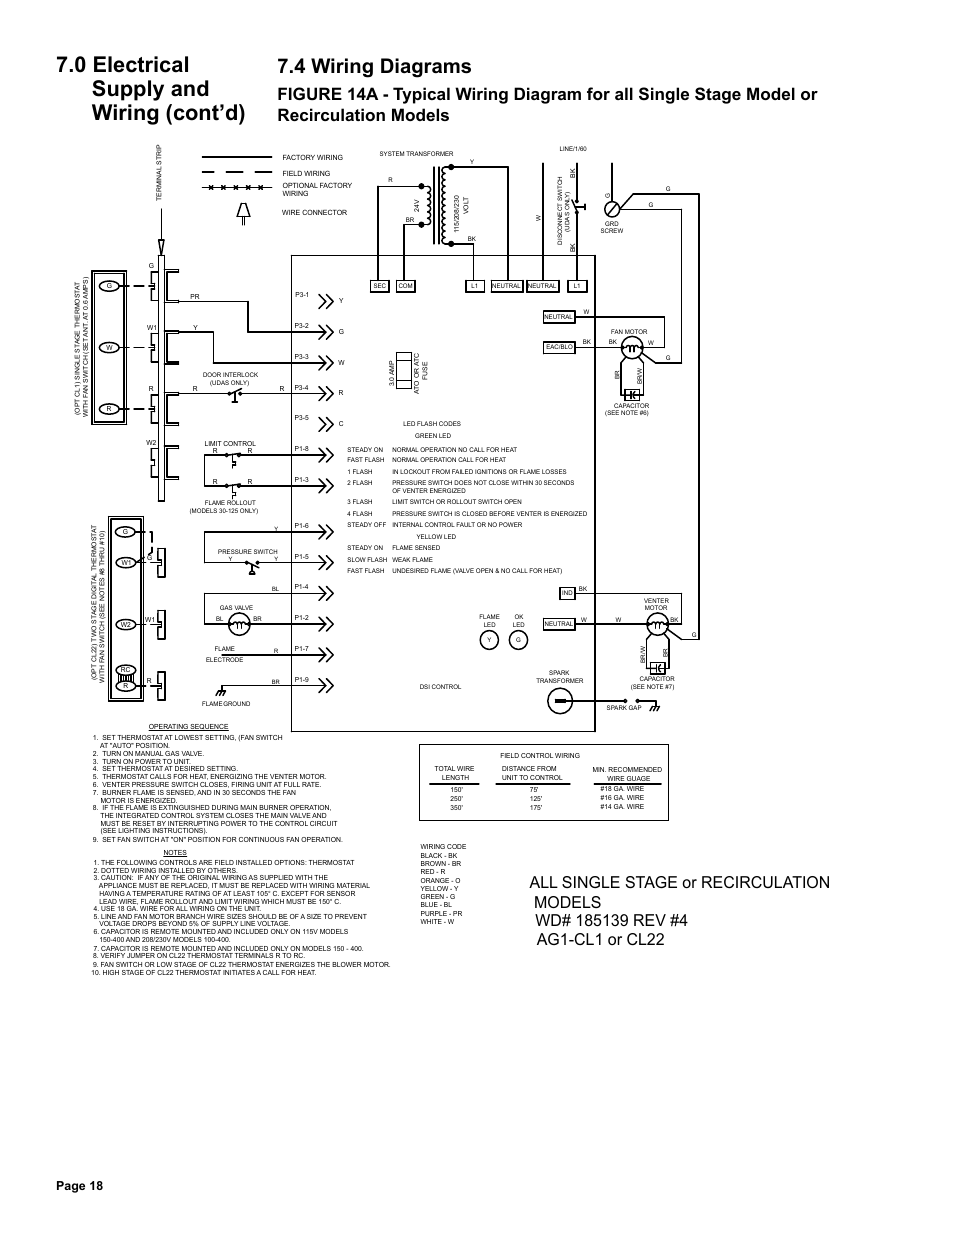 reznor udas unit installation manual page18 4 wiring diagrams, 0 electrical supply and wiring (cont'd), page field controls power venter wiring diagram at edmiracle.co